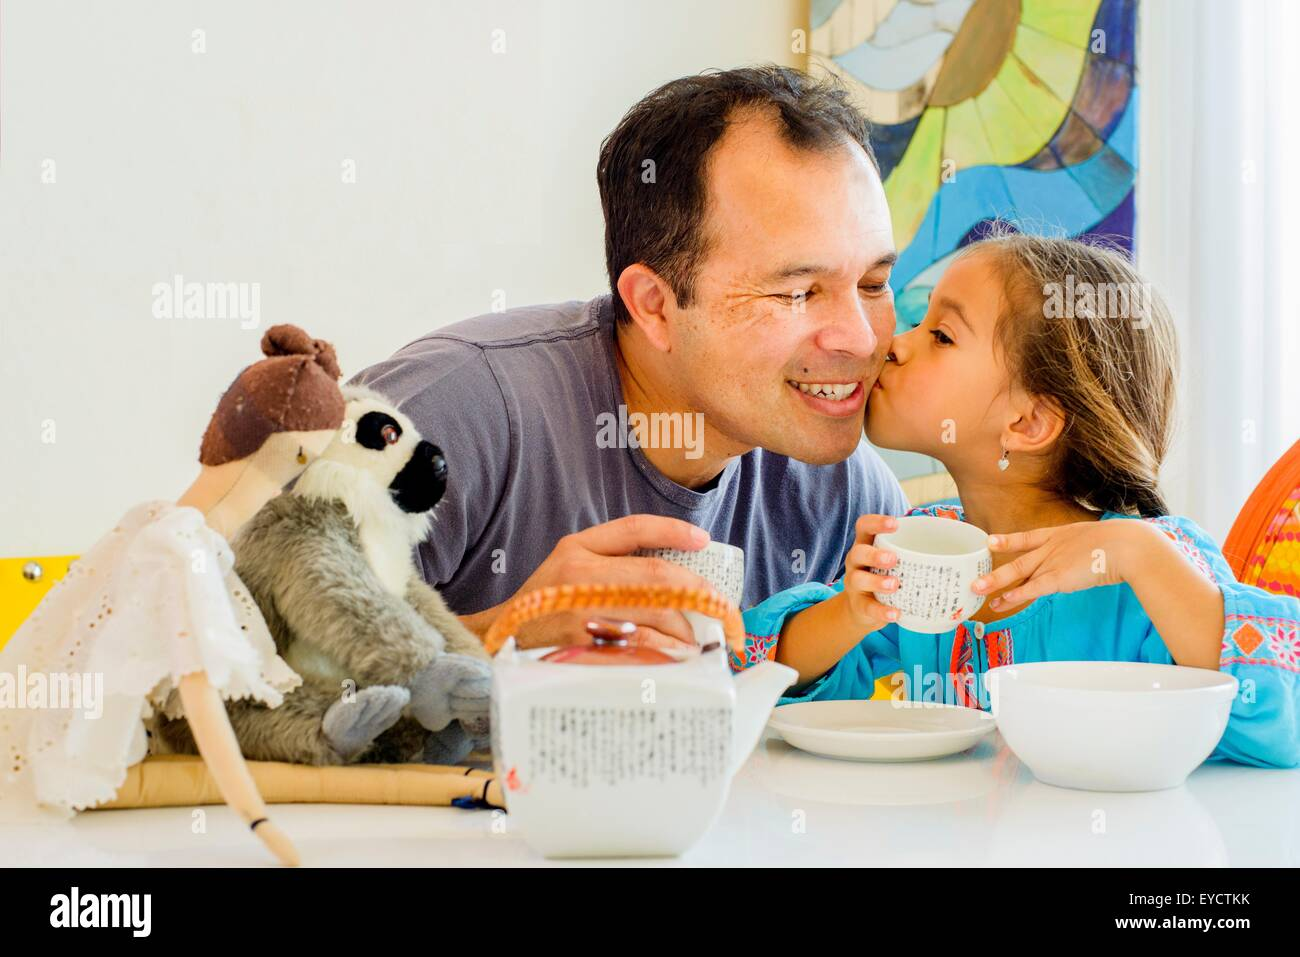 Girl kissing father on cheek at table - Stock Image